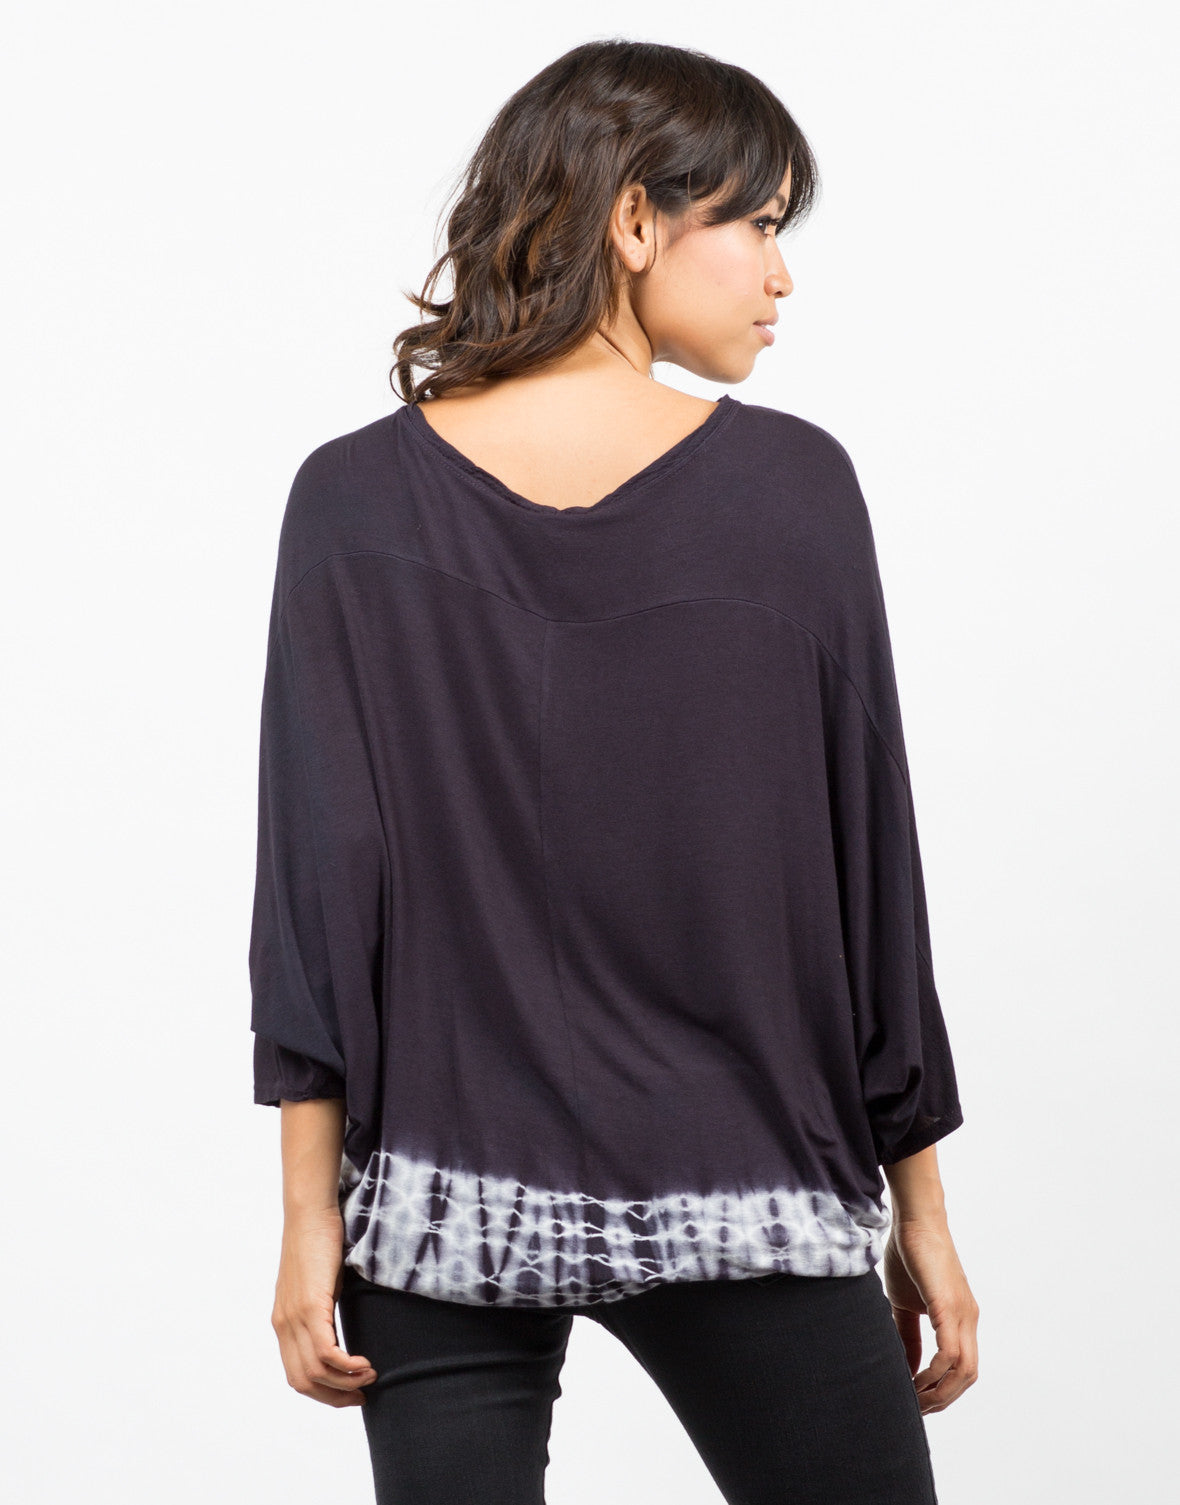 Back View of Tie-Dye Trimmed Dolman Top